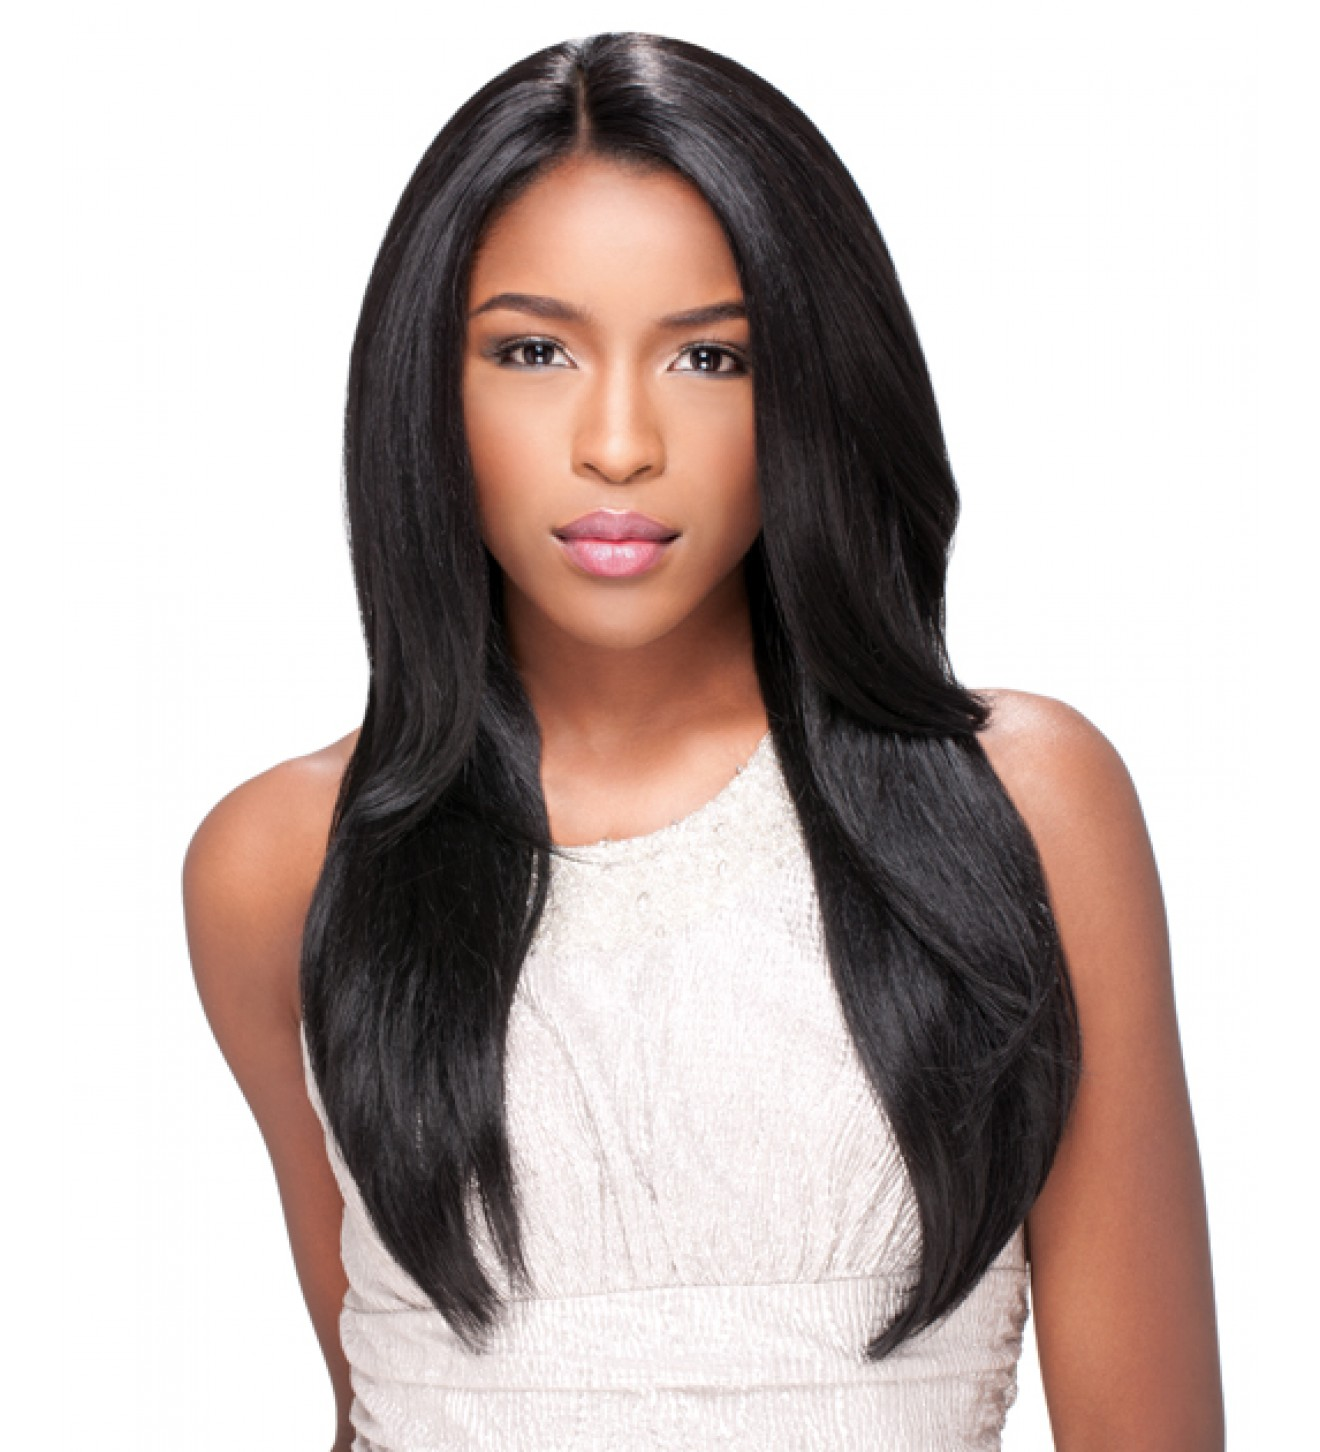 Hairstyles For Straight Hair Weave : Virgin remy sew in weave hair extensions natural straight